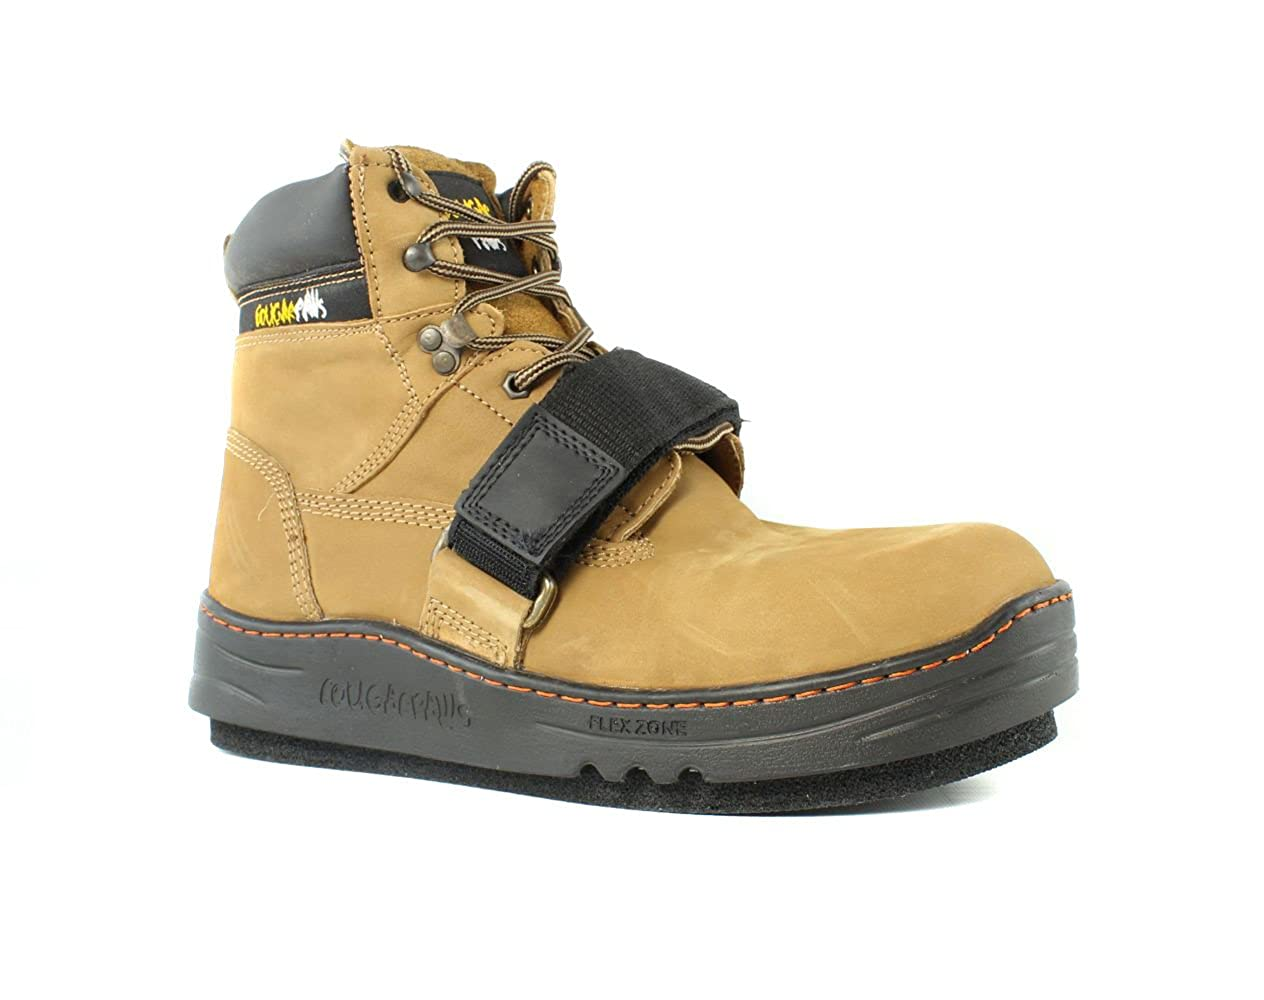 Cougar Paws Peak Performer Roofing Boots CPPP-PARENT